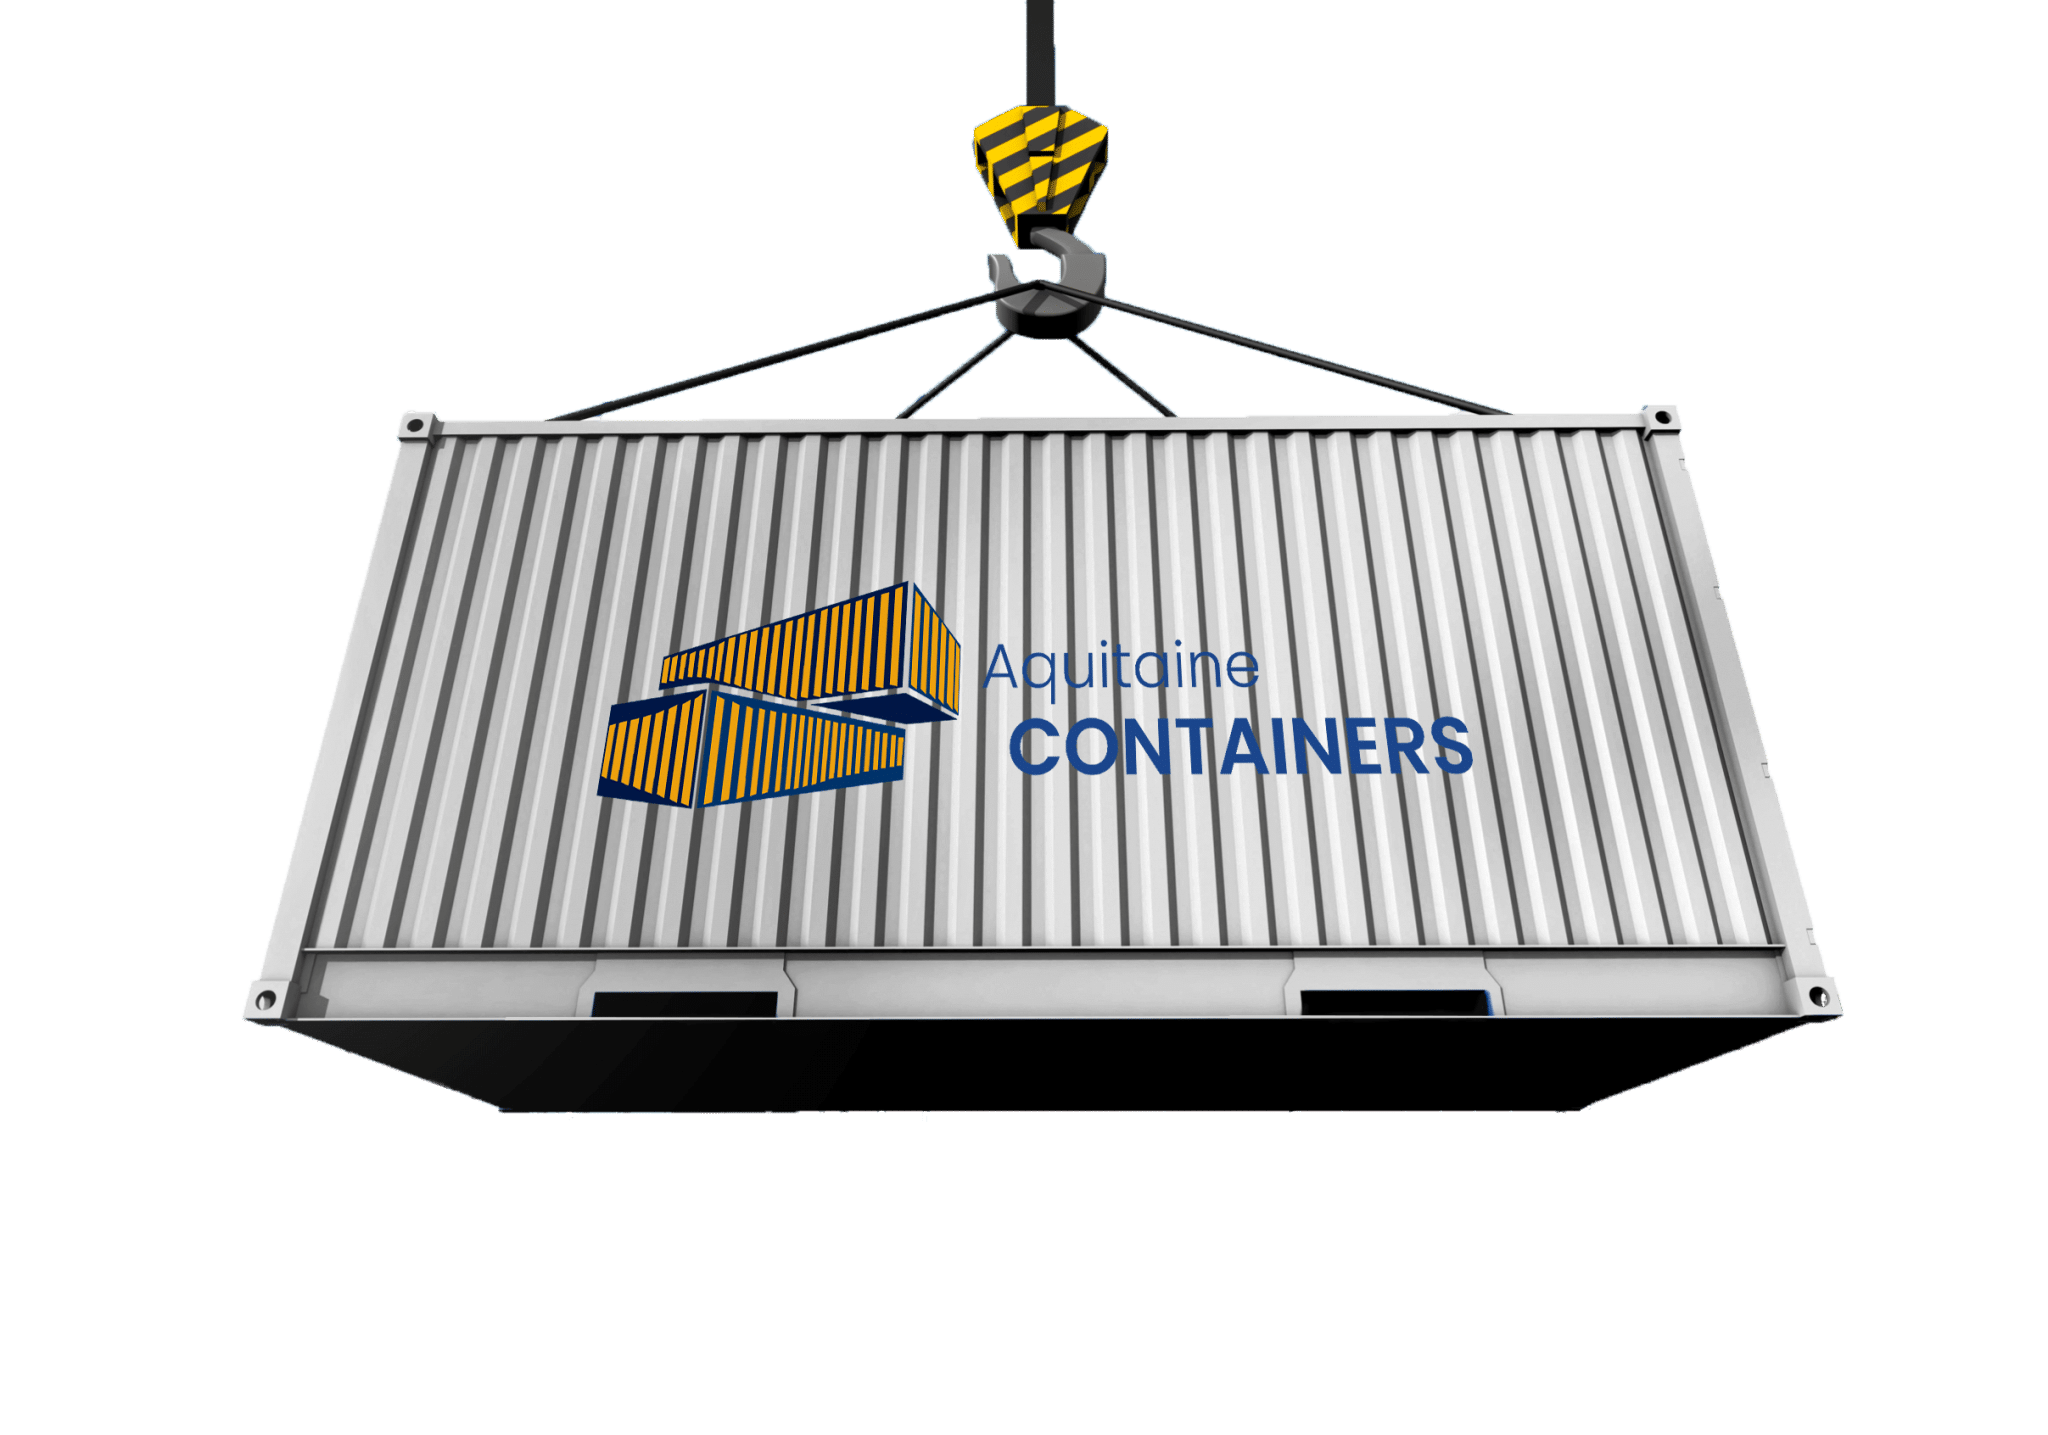 Aquitaine-containers: Installation containers